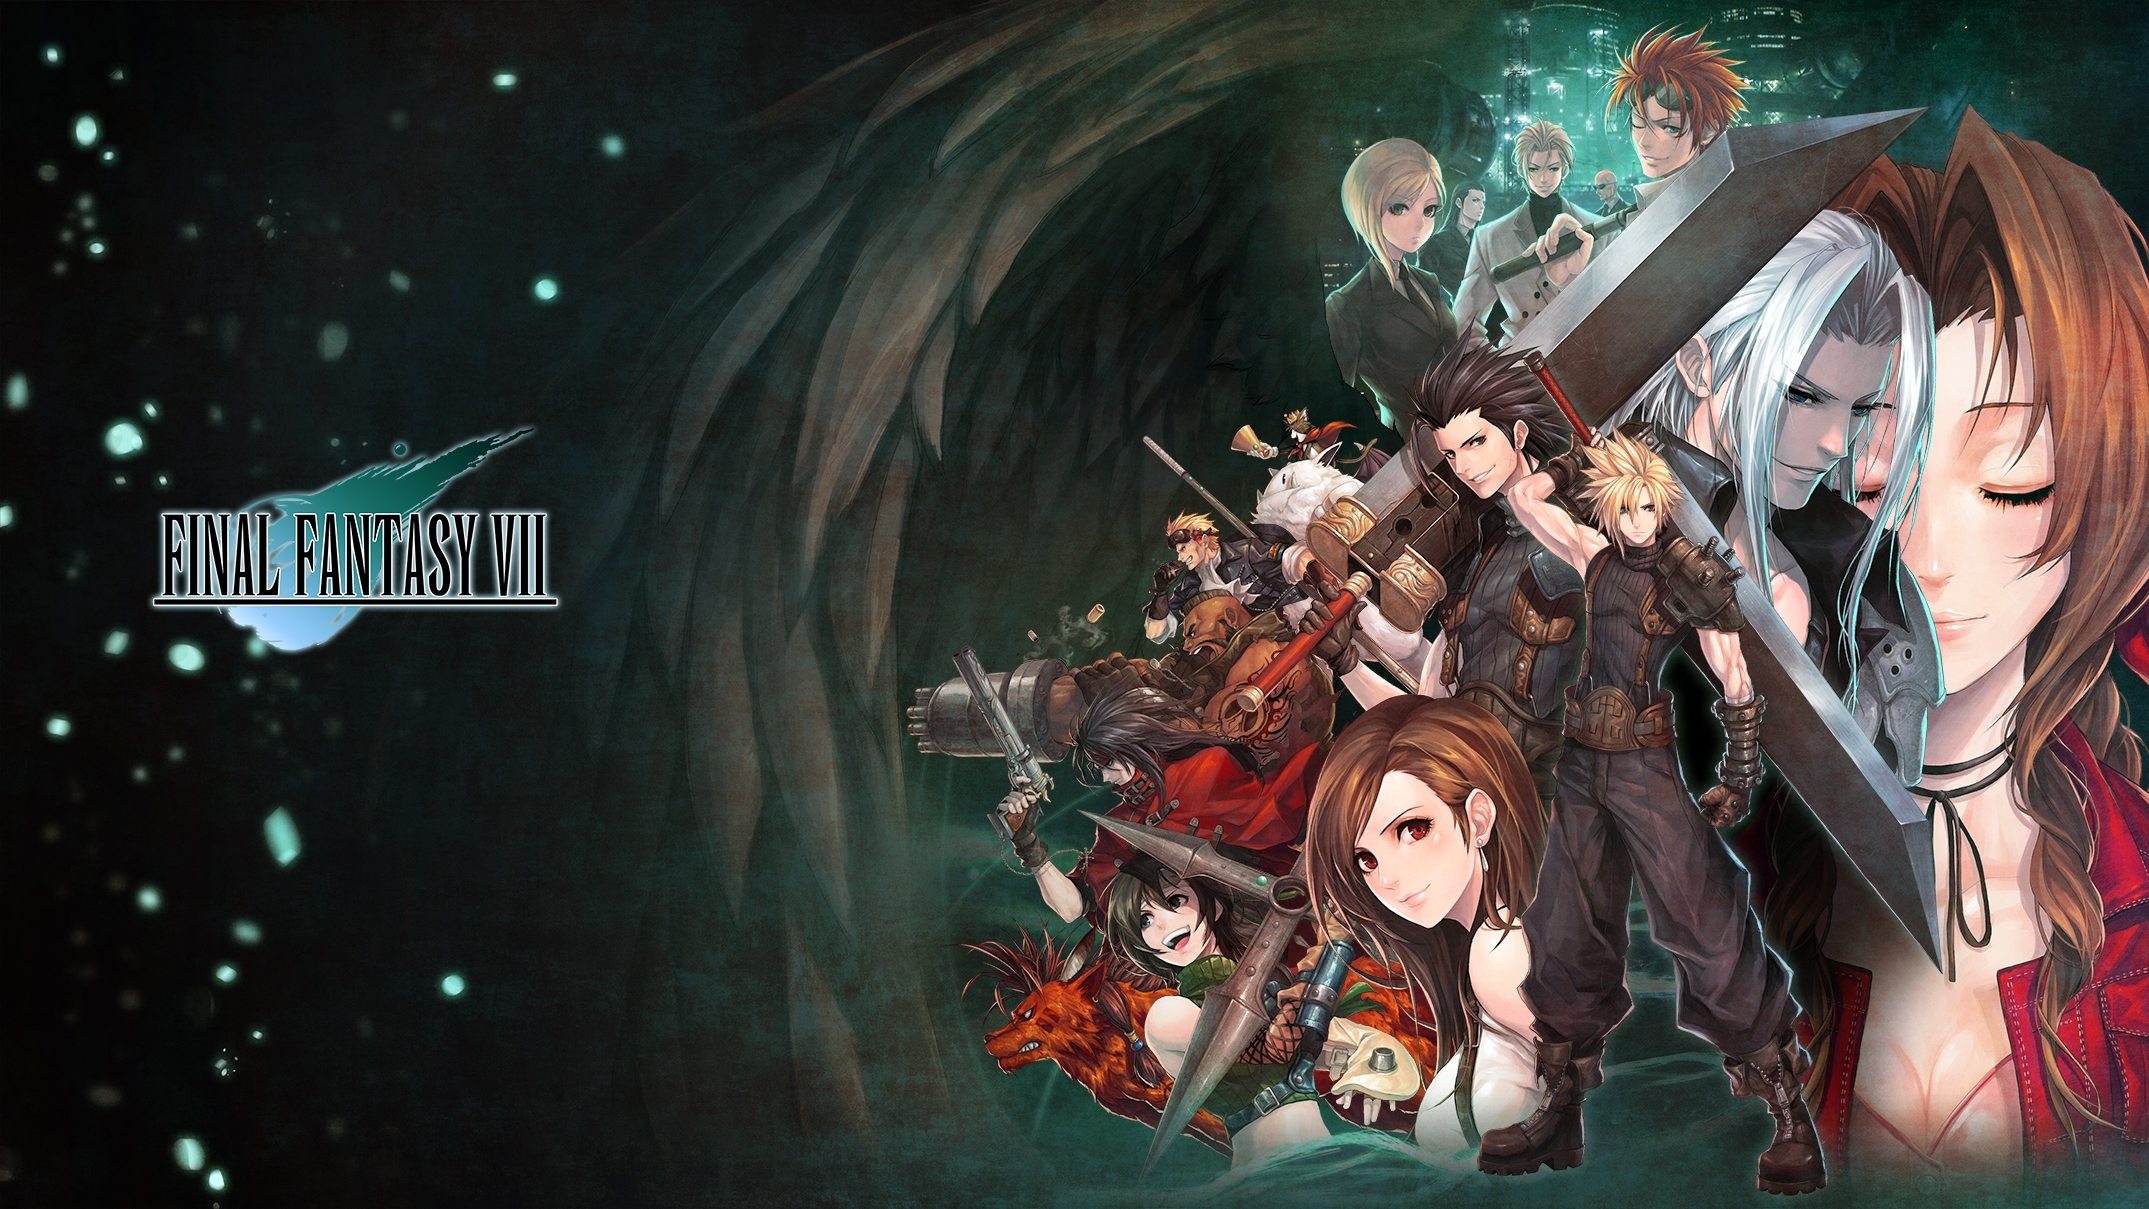 10 New Final Fantasy Vii Wallpaper FULL HD 1920×1080 For PC Background